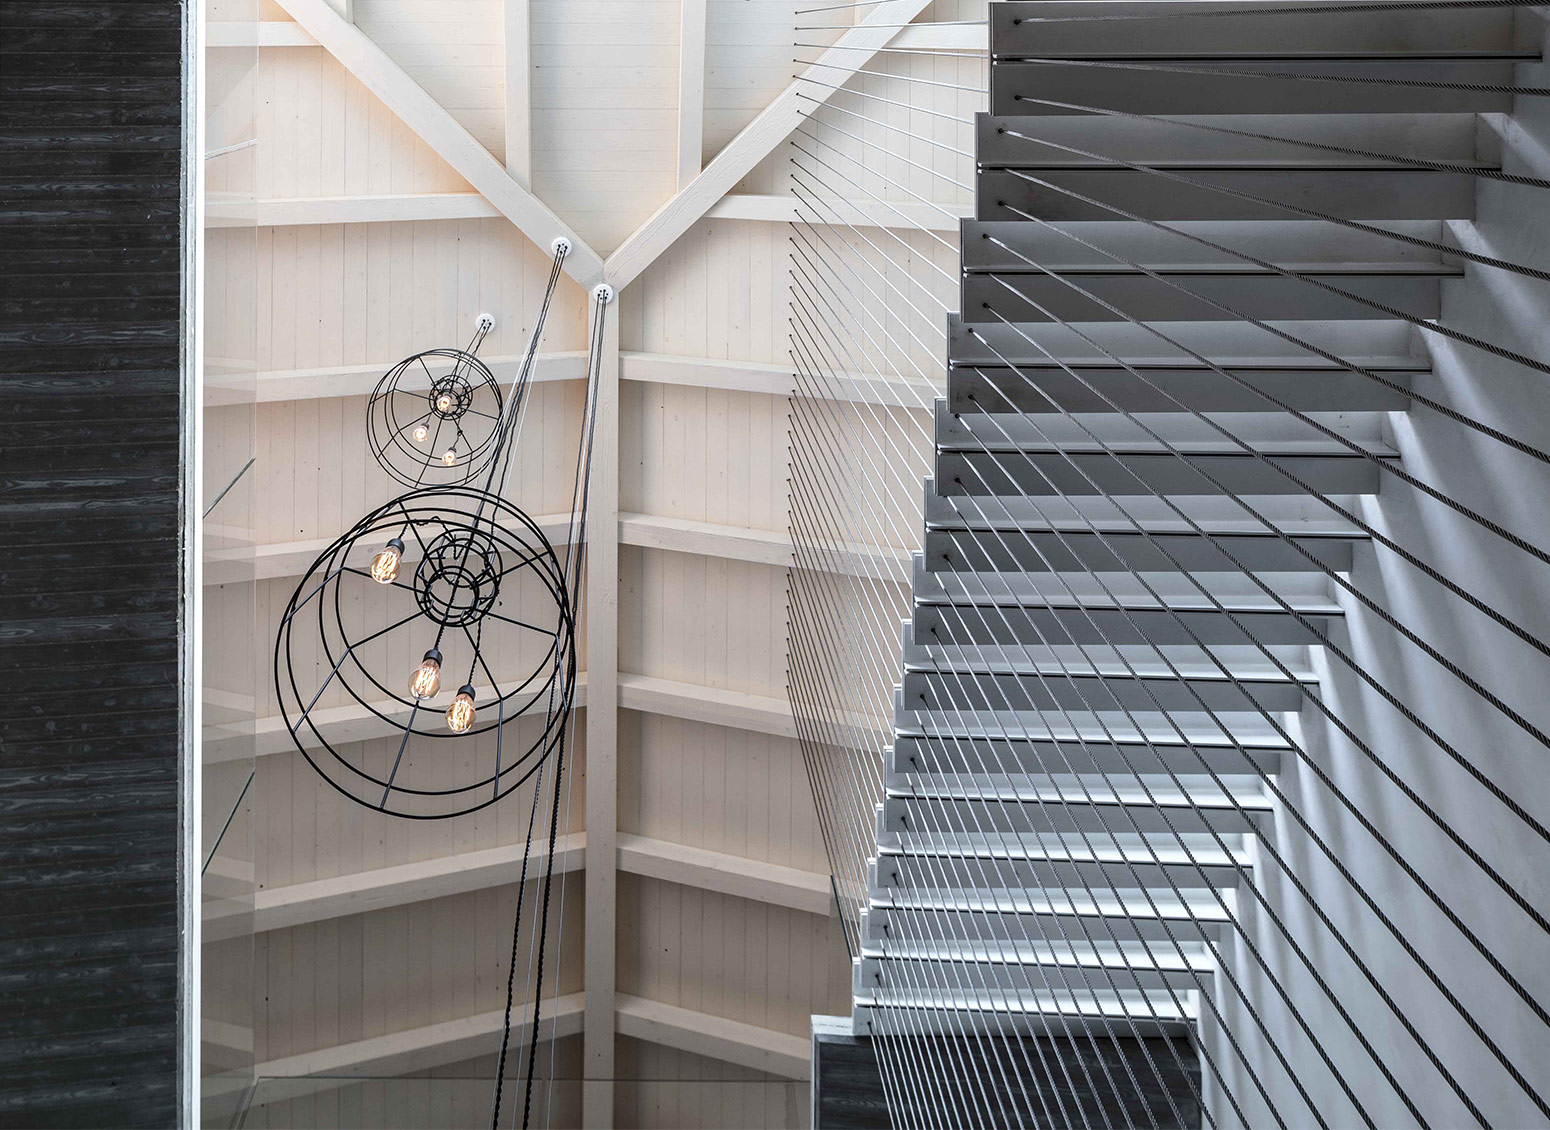 How to illuminate an internal staircase: 6 ideas by Karman